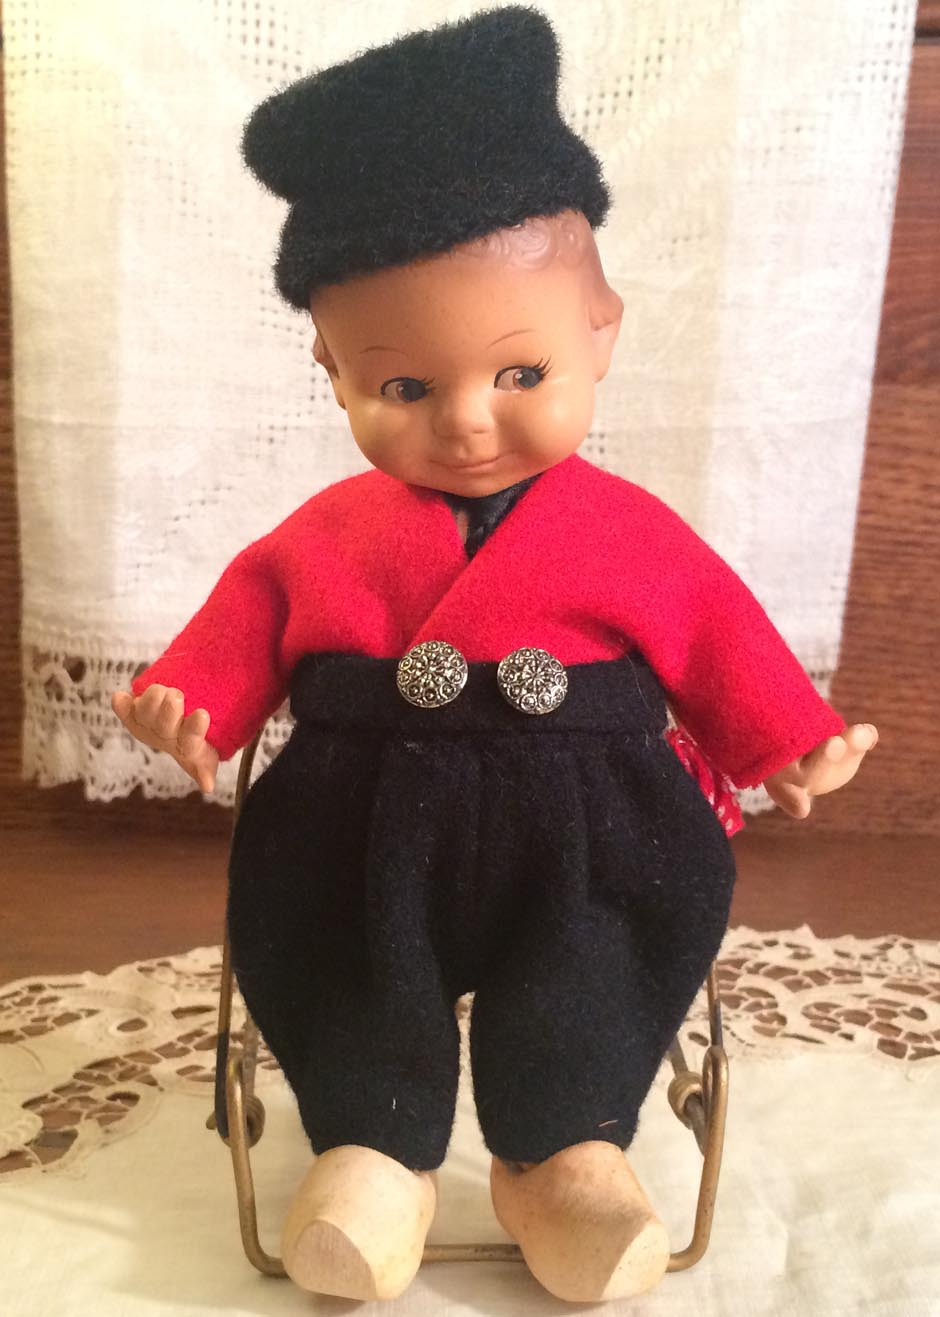 Adorable & All-Original Vintage Little Boy Doll from The Netherlands, Wearing Wooden Shoes,1940s-50s